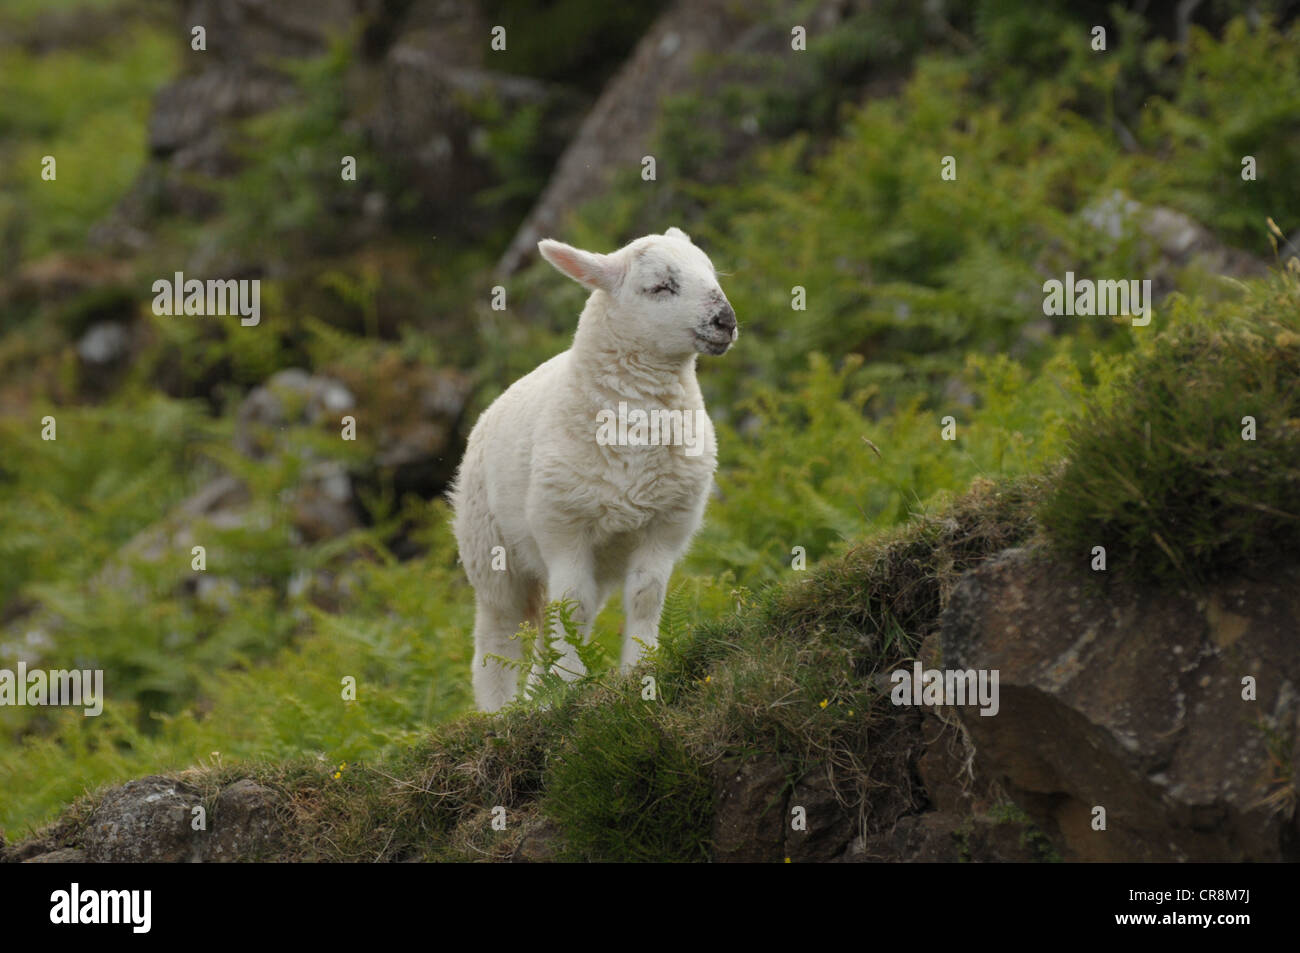 Lamb standing on the edge of a bank. - Stock Image